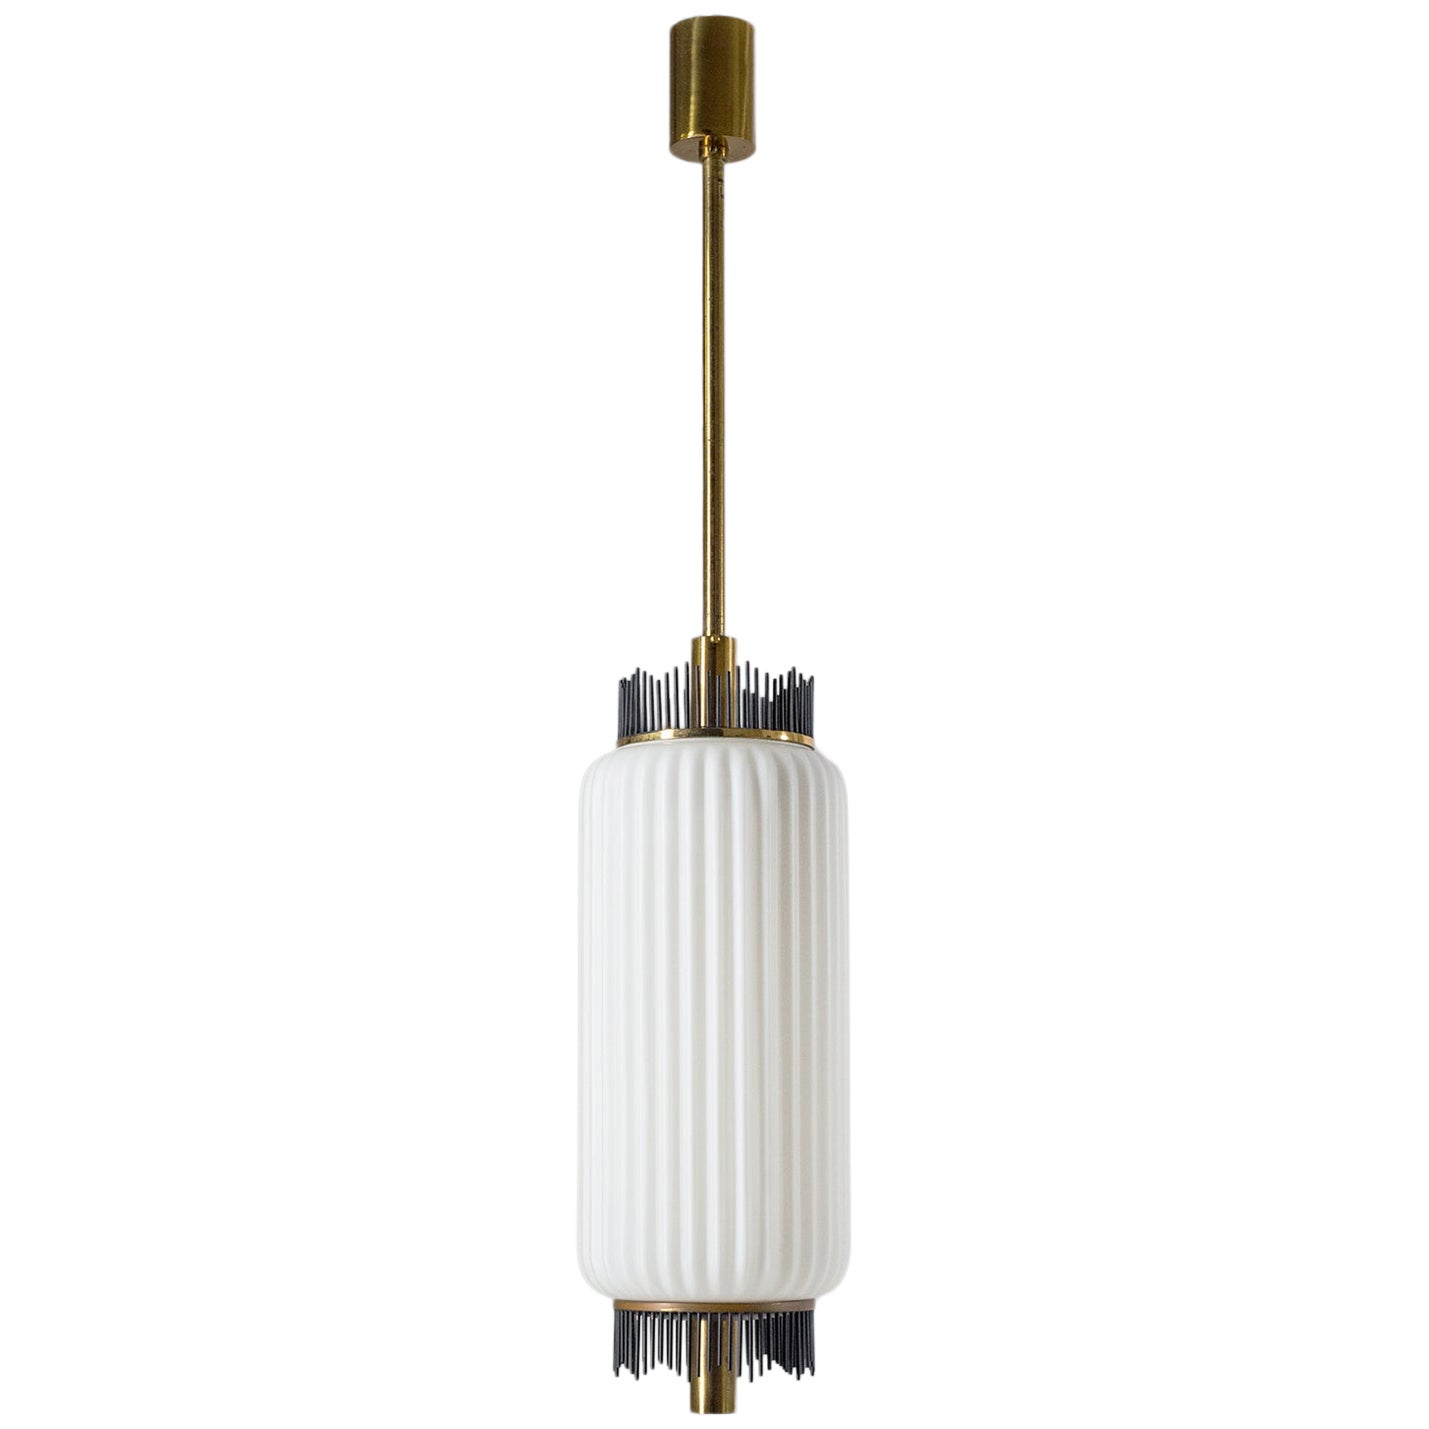 Angelo Lelii Pendant for Arredoluce, circa 1959, Brass and Ribbed Satin Glass